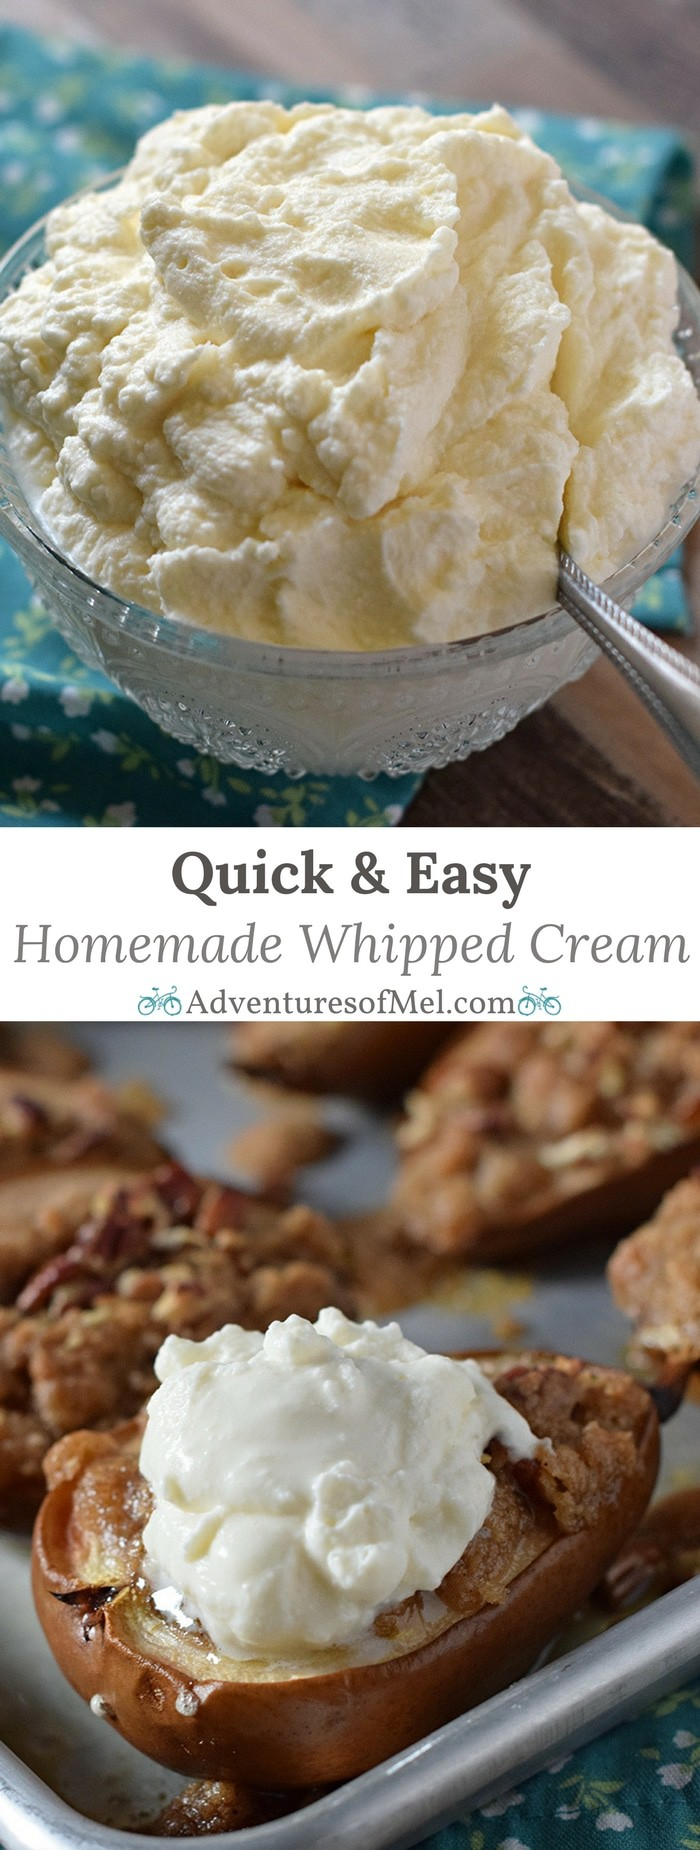 Homemade whipped cream can be made in 5 minutes with this easy recipe. Only 4 ingredients, including a secret ingredient, to a creamy delicious topping for all your favorite desserts.